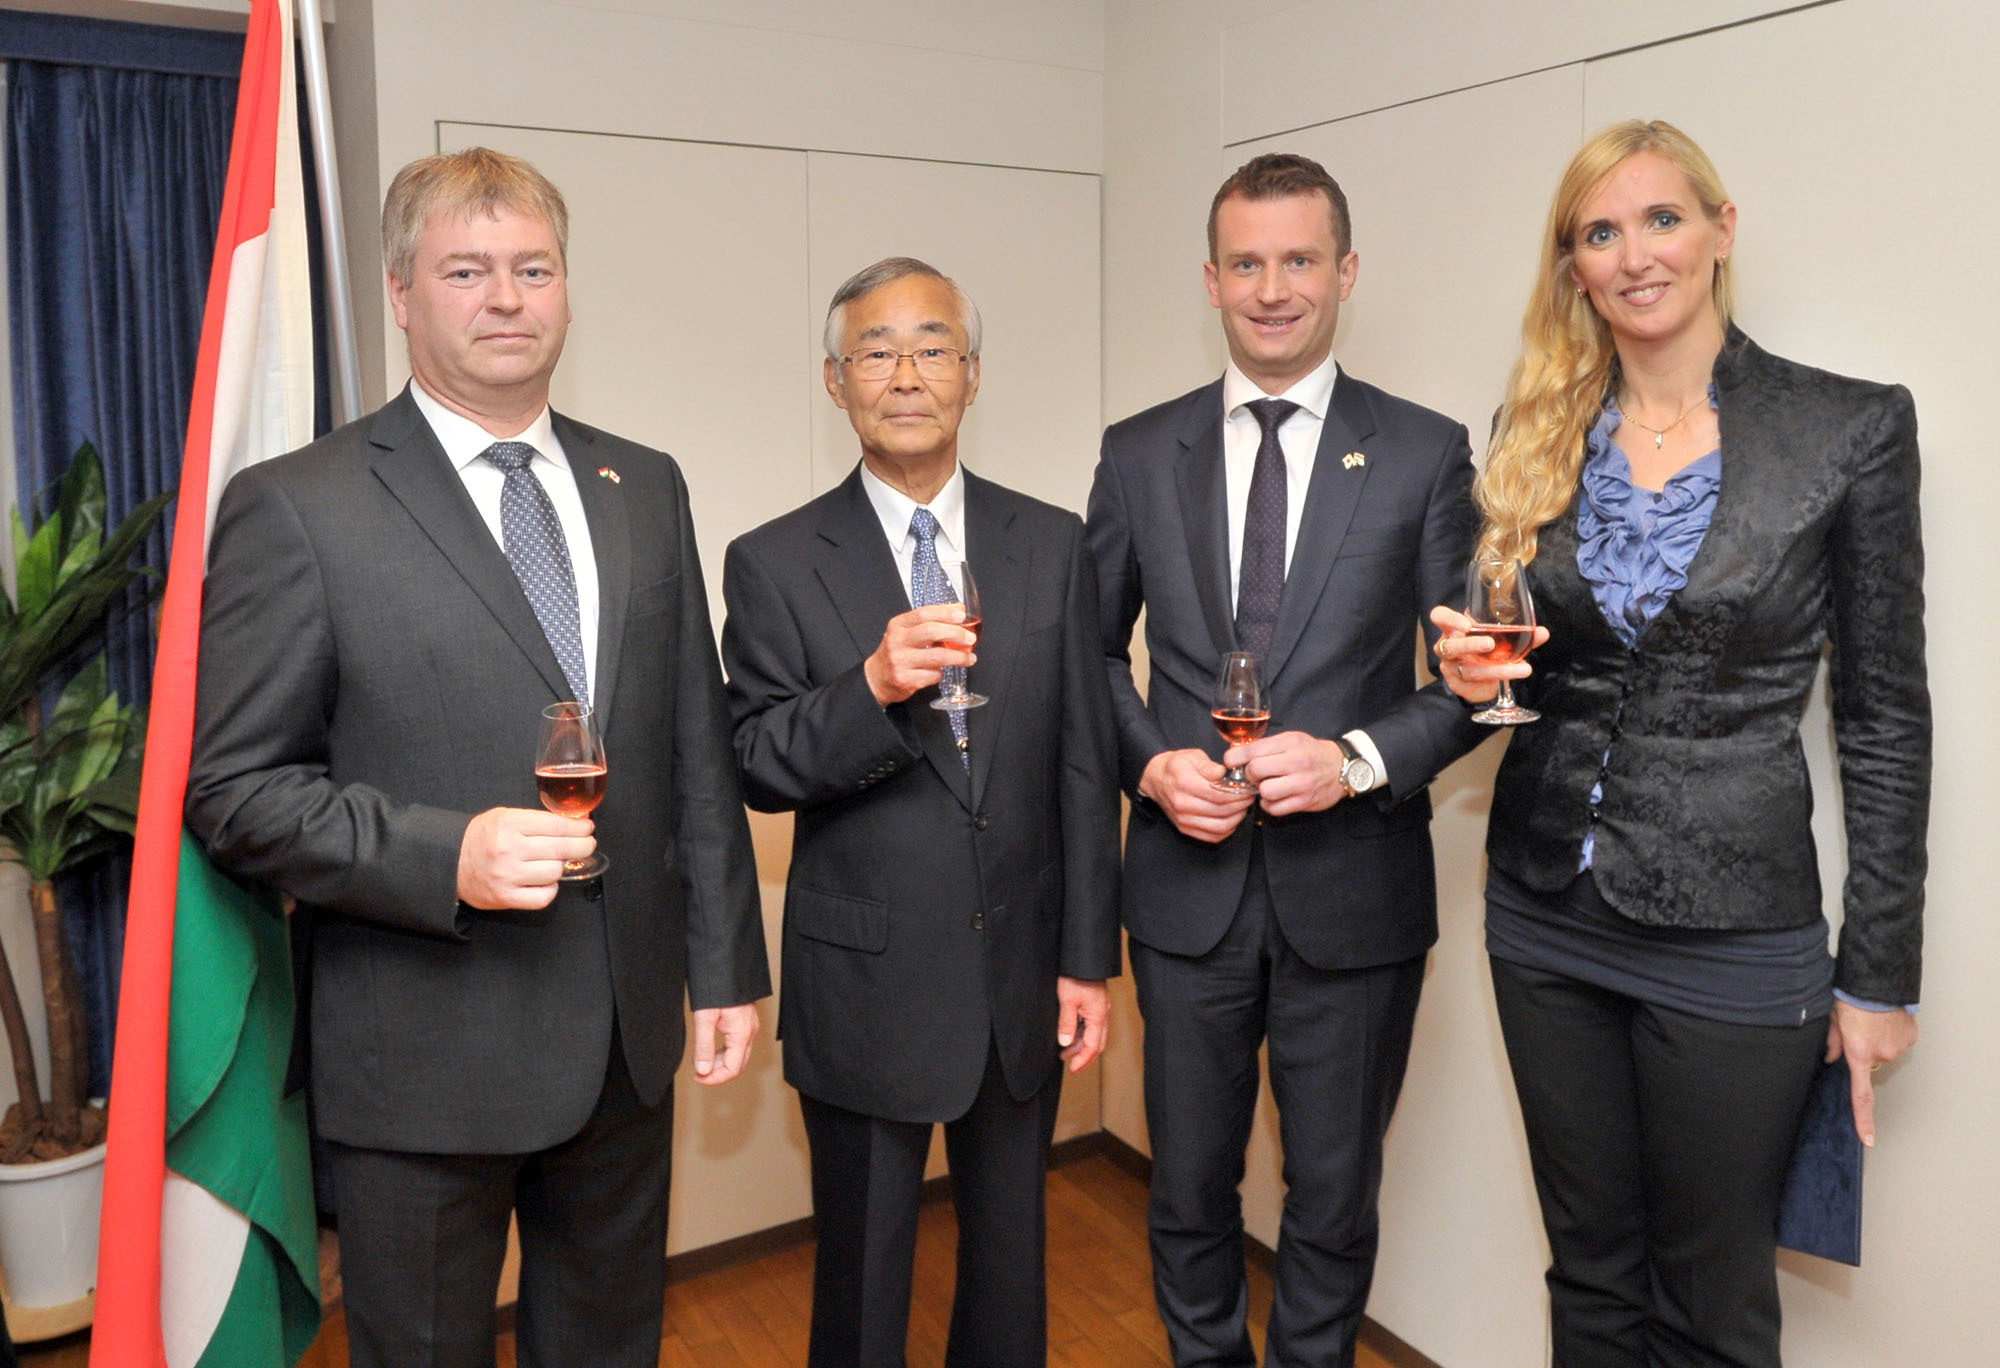 From left, Charge d'affaires of Hungary Attila Erdos joins Chairman of the Japan-Hungary Friendship Association Shinichi Nabekura; Hungary's Ambassador-designate Norbert Palanovics; and Hungary's State Secretary for Sports Tunde Szabo during a National Day reception at the embassy in Tokyo on Oct. 21. |  YOSHIAKI MIURA